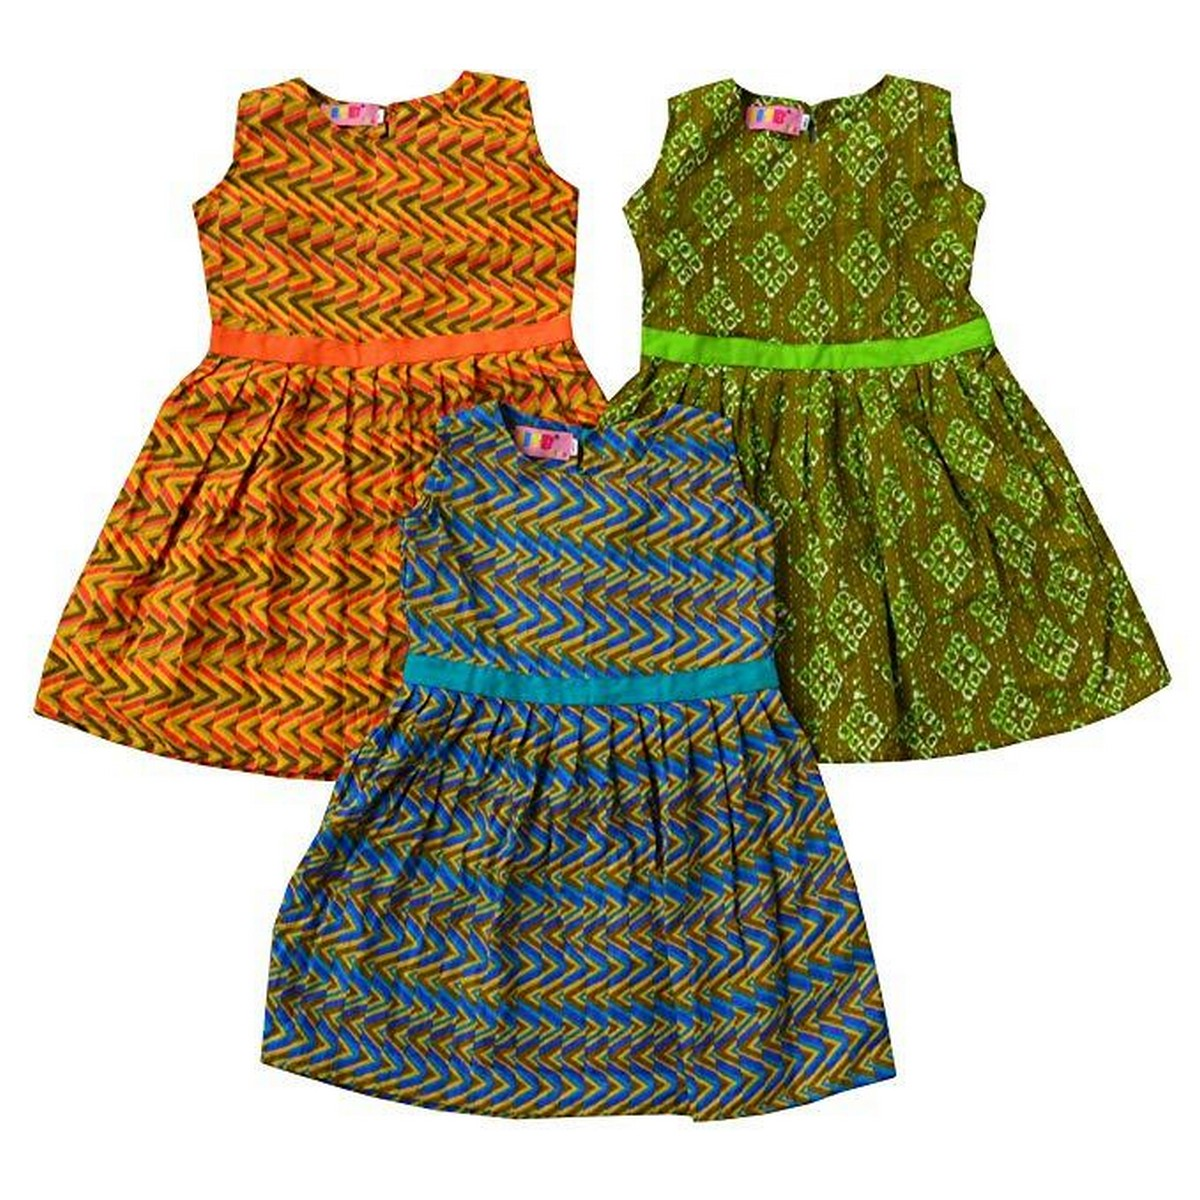 Pack Of 3 Premium Quality Ruffle Frock Multi color & Multi-printed-1 To 8 Years